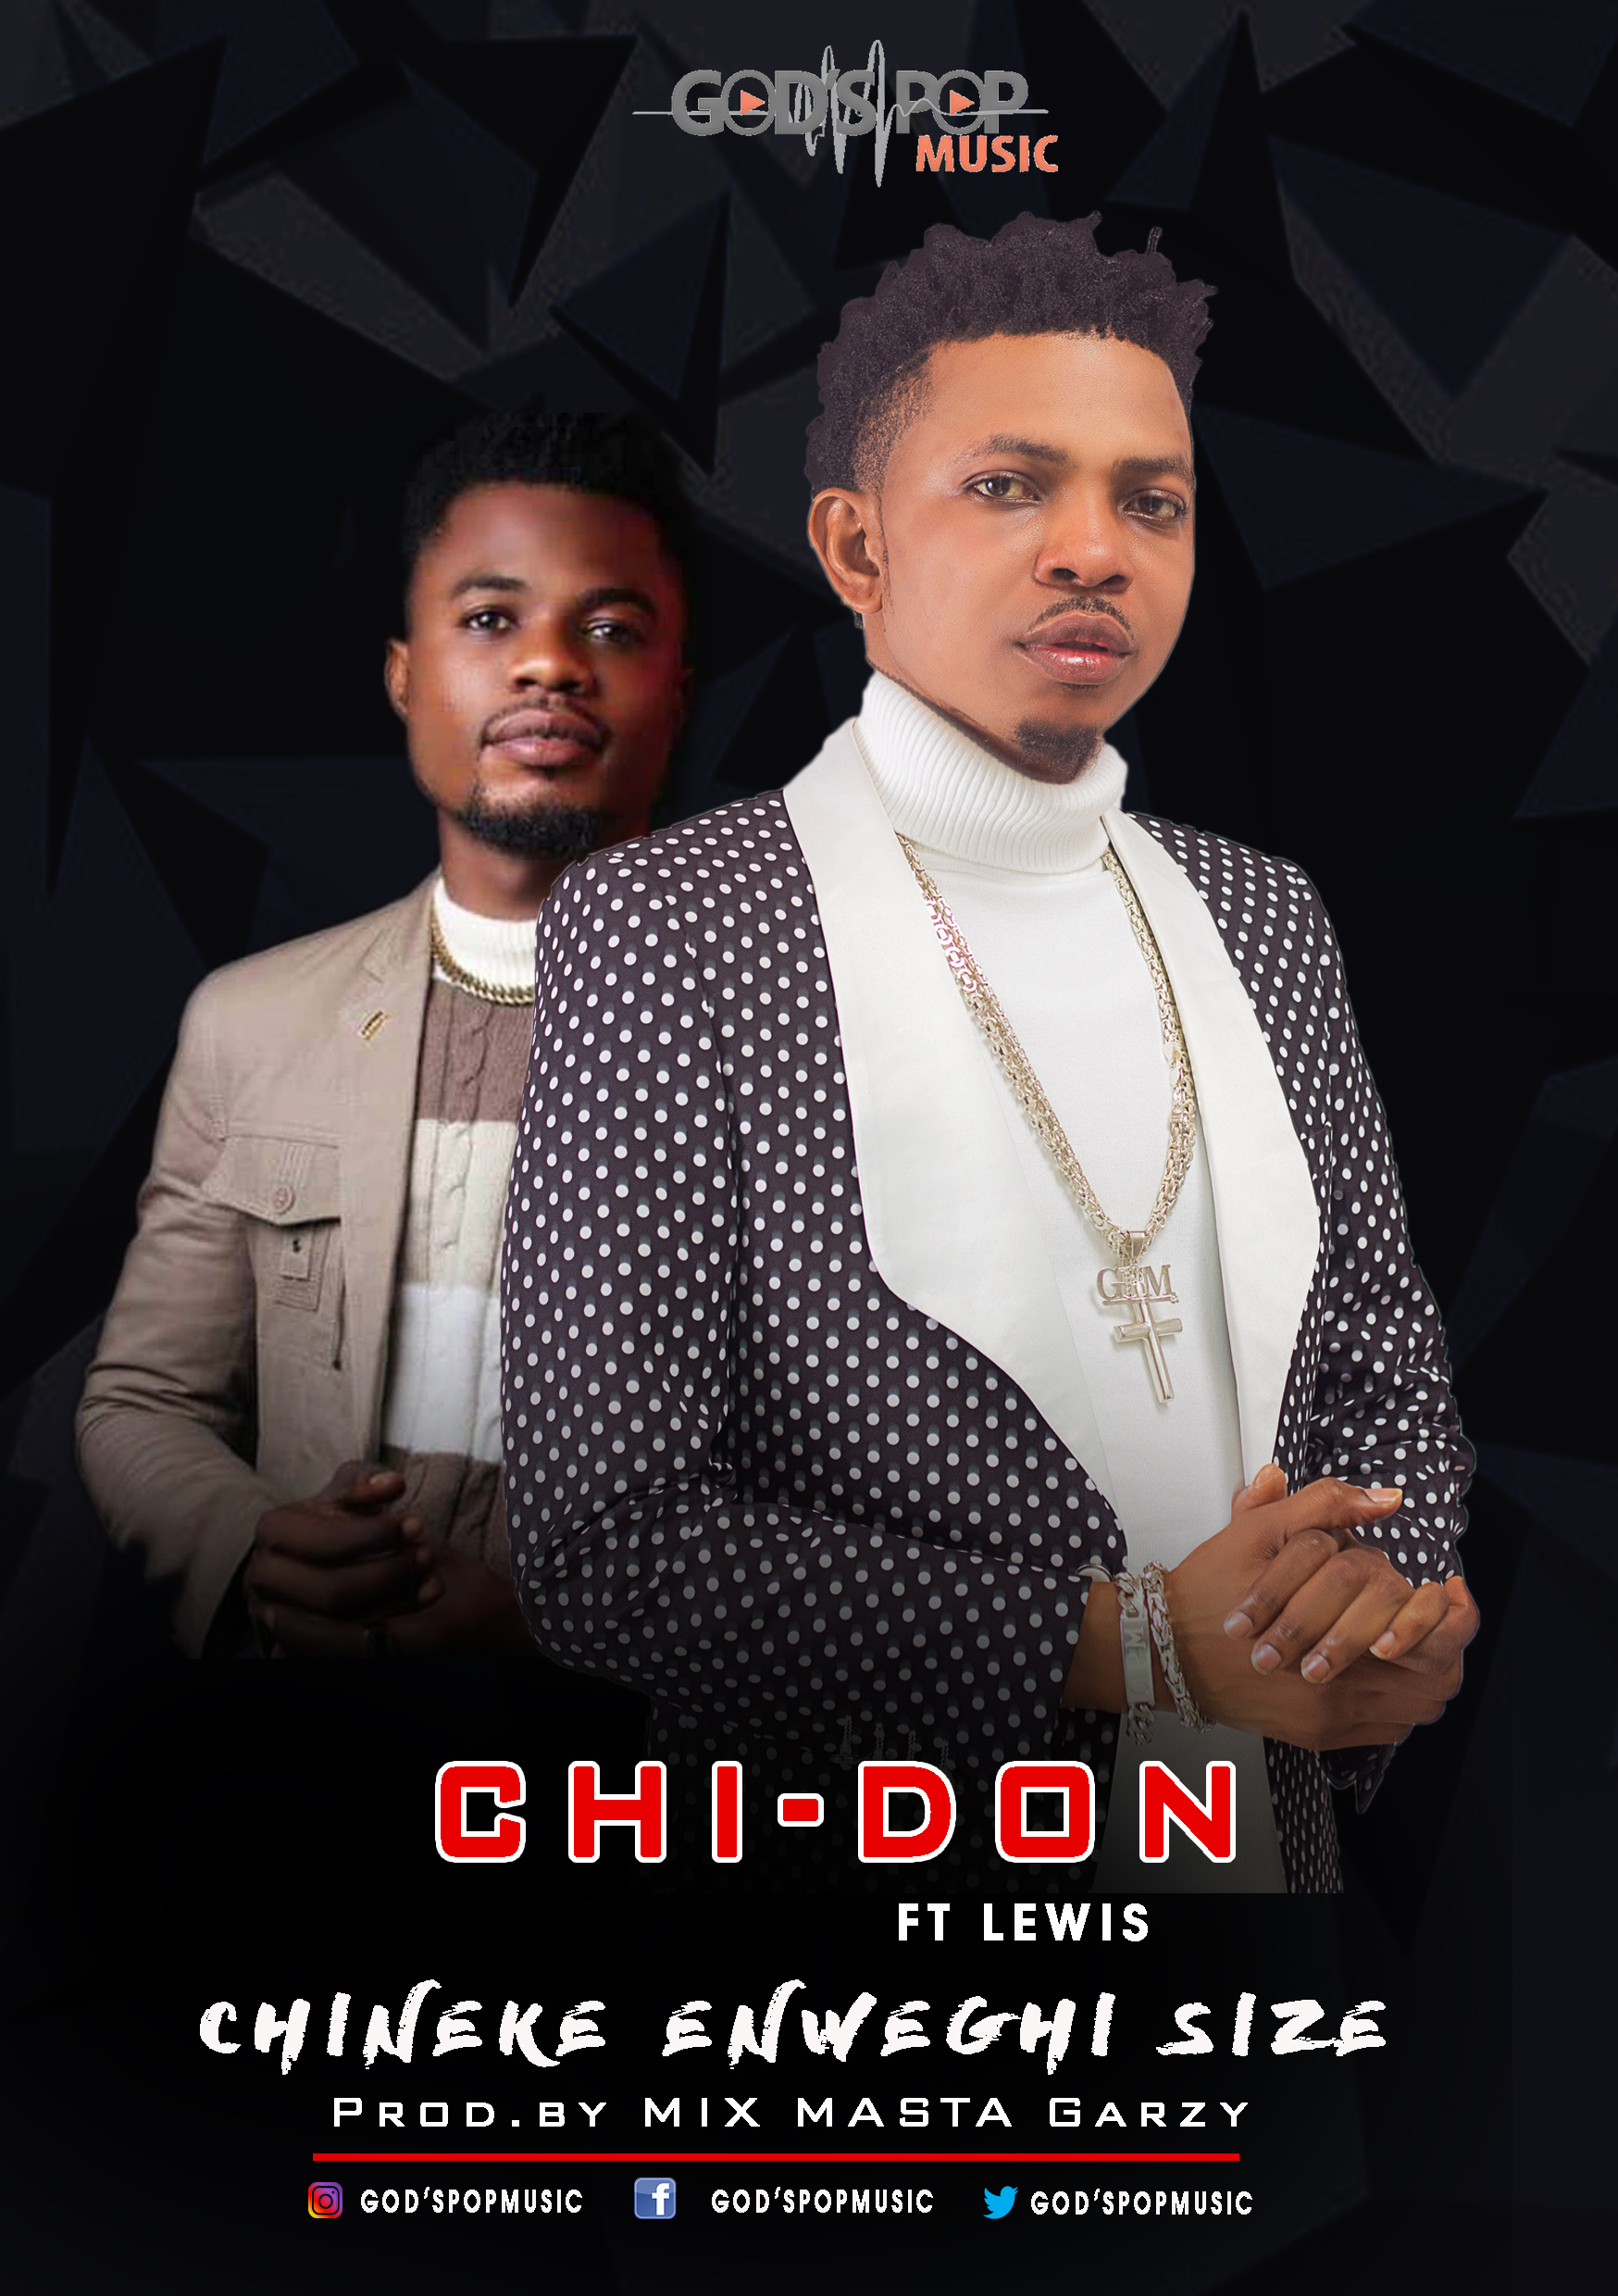 CHI-DON – the King of God's Pop Music – drops new single